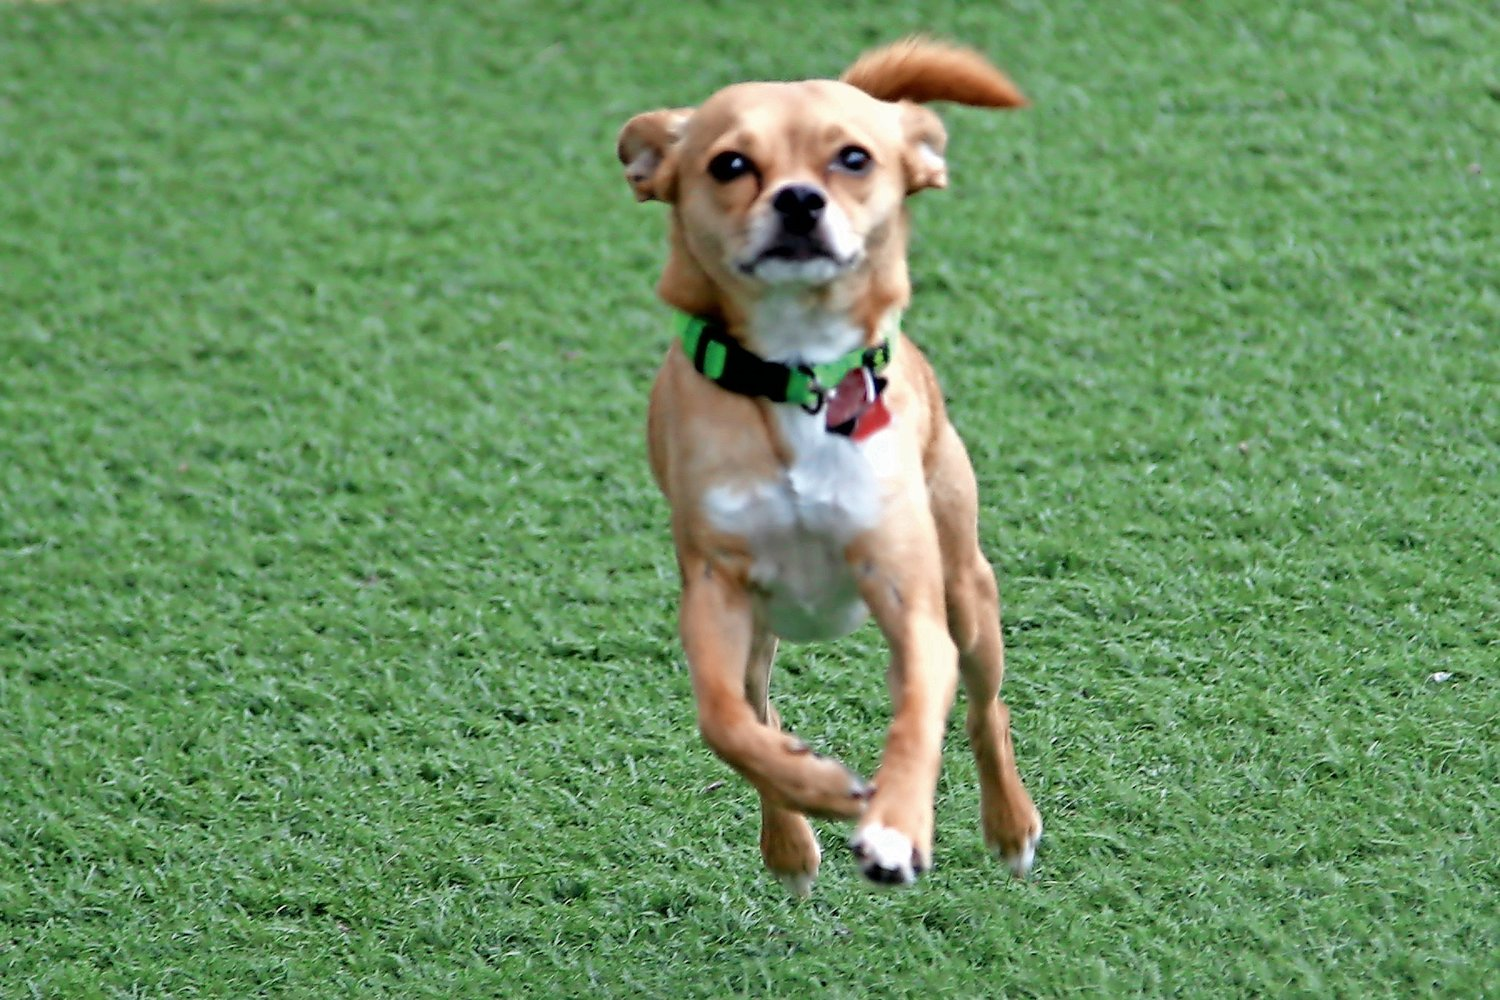 Thor, a Pomeranian-Chihuahua mix, ran around the Valley Stream dog park in 2017.